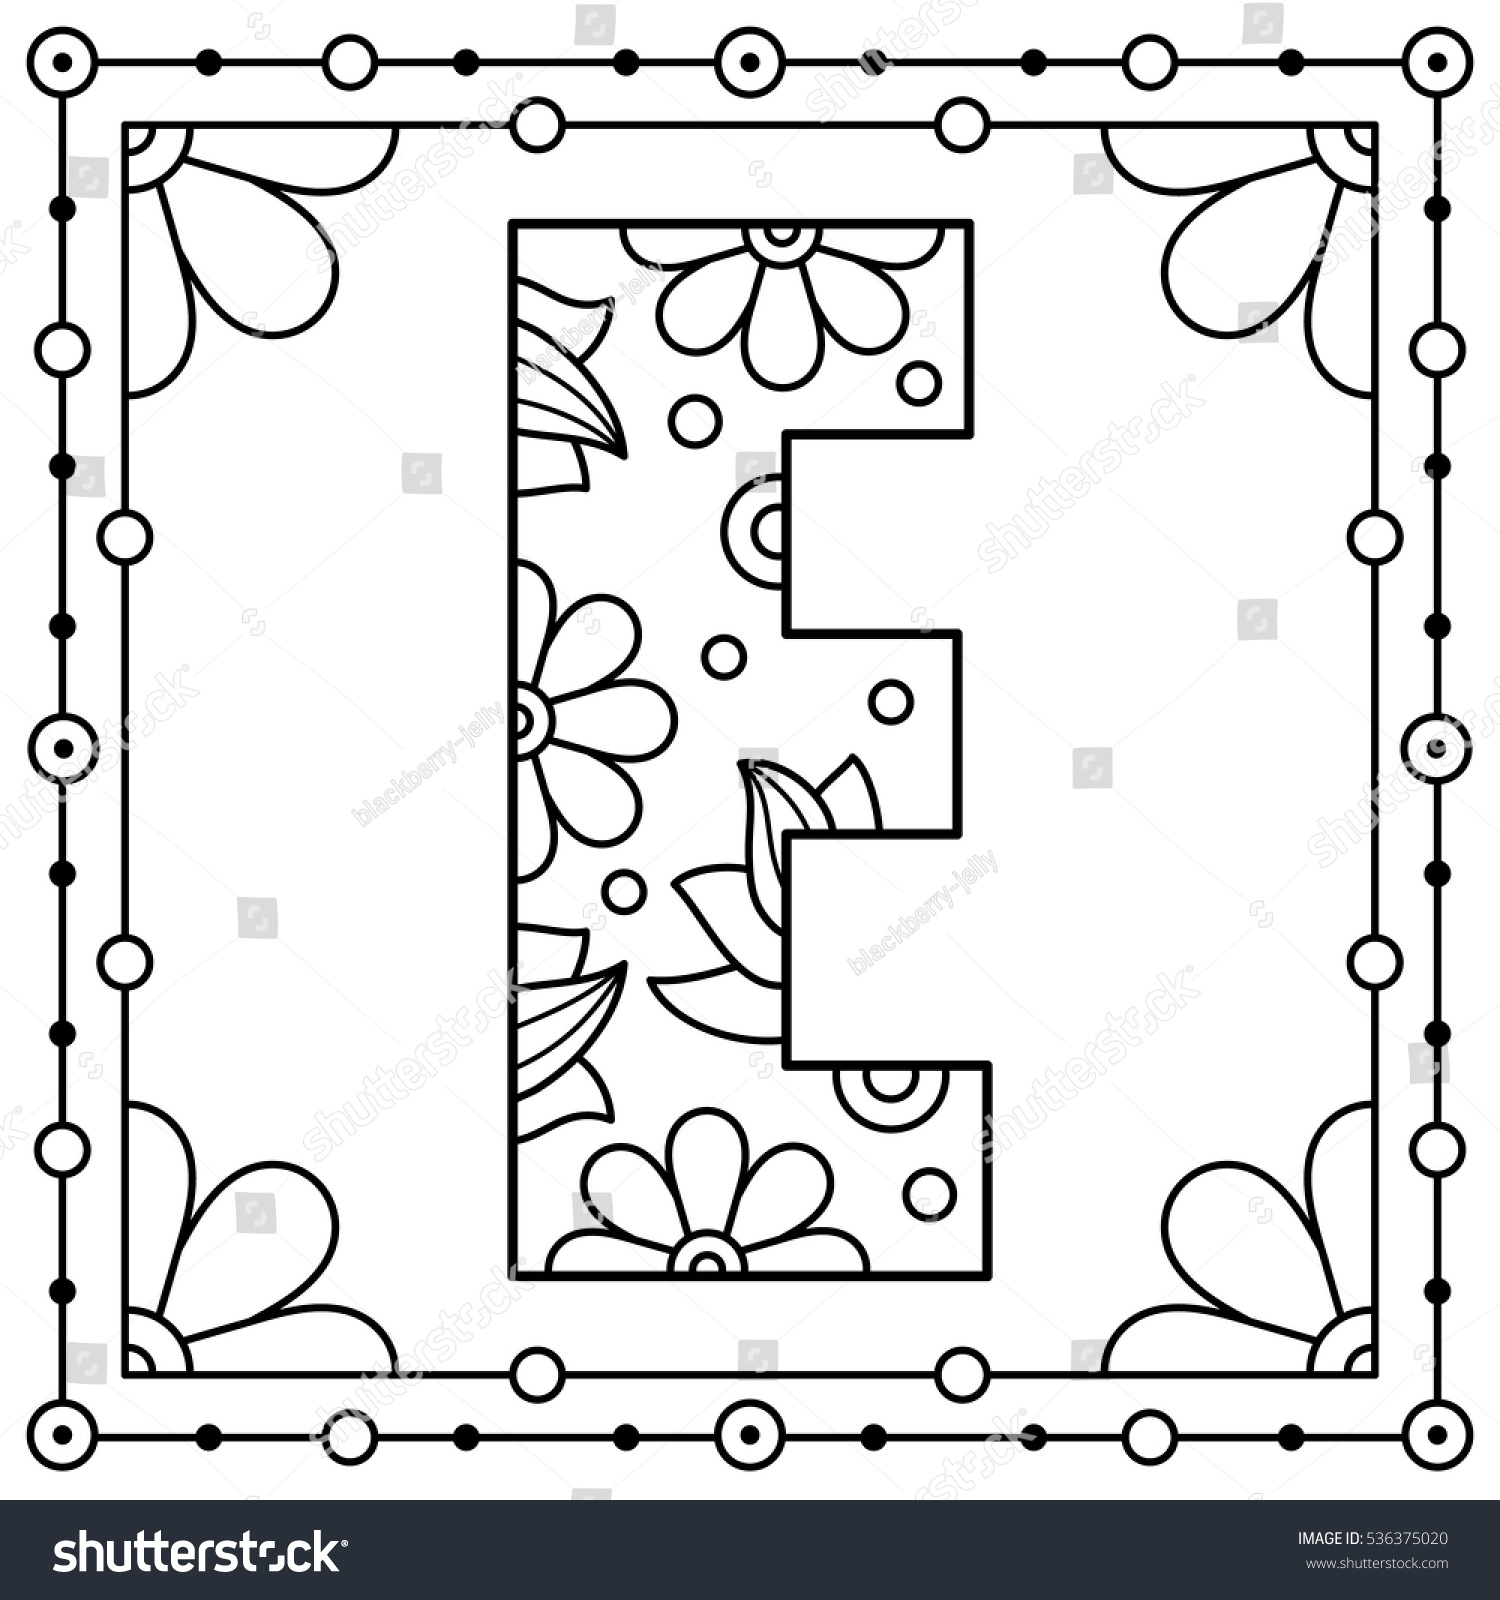 alphabet coloring page capital letter e stock vector 536375020